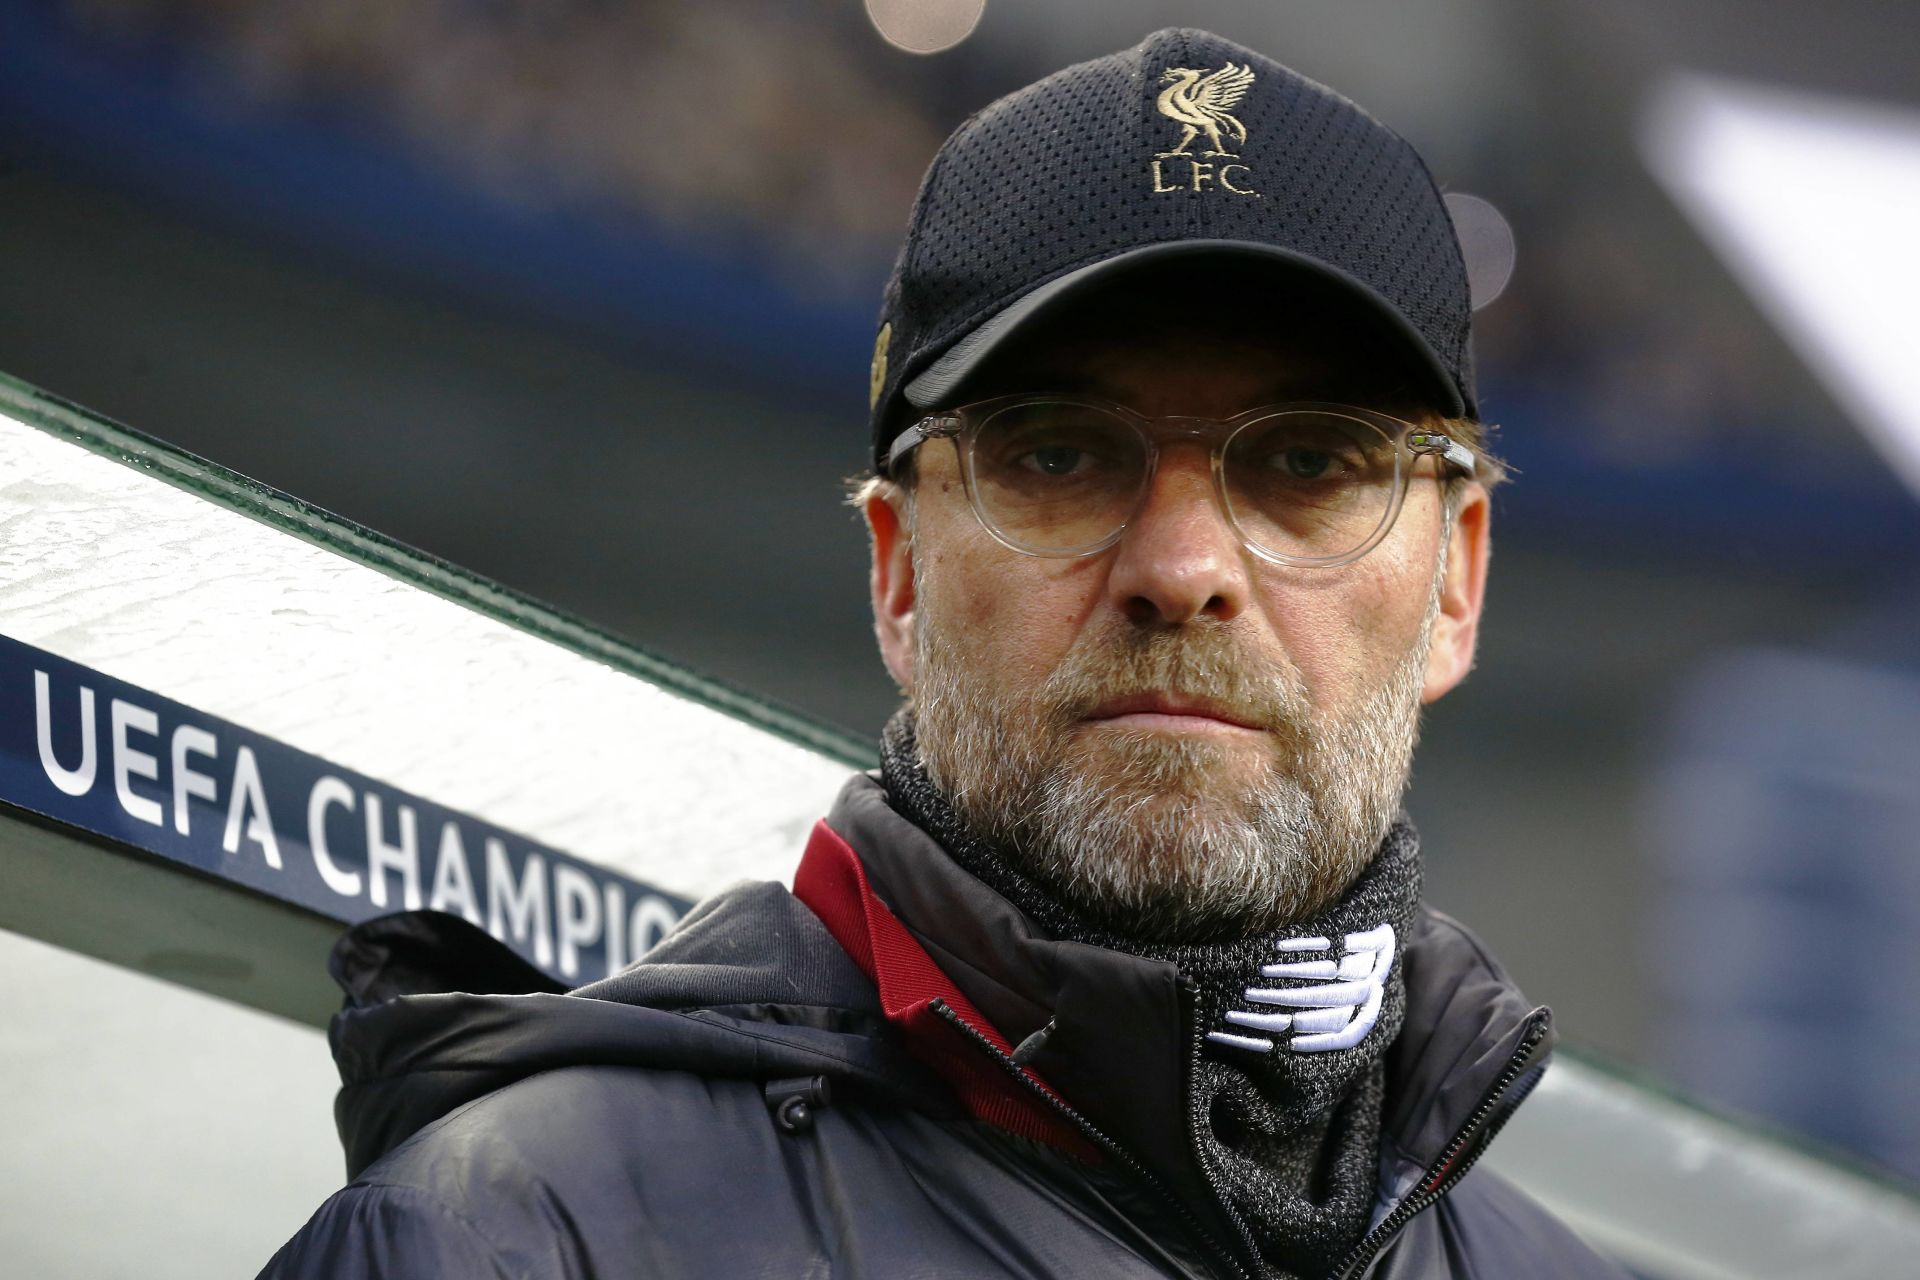 Jurgen Klopp (Liverpool), APRIL 17, 2019 - Football / Soccer : UEFA Champions League Quarter-finals 2nd leg match between FC Porto 1-4 Liverpool FC at the Estadio do Dragao in Porto, Portugal. (Photo by Mutsu Kawamori/AFLO) FOT. AFLO / NEWSPIX.PL POLAND ONLY !!! --- Newspix.pl *** Local Caption *** www.newspix.pl mail us: info@newspix.pl call us: 0048 022 23 22 222 --- Polish Picture Agency by Ringier Axel Springer Poland